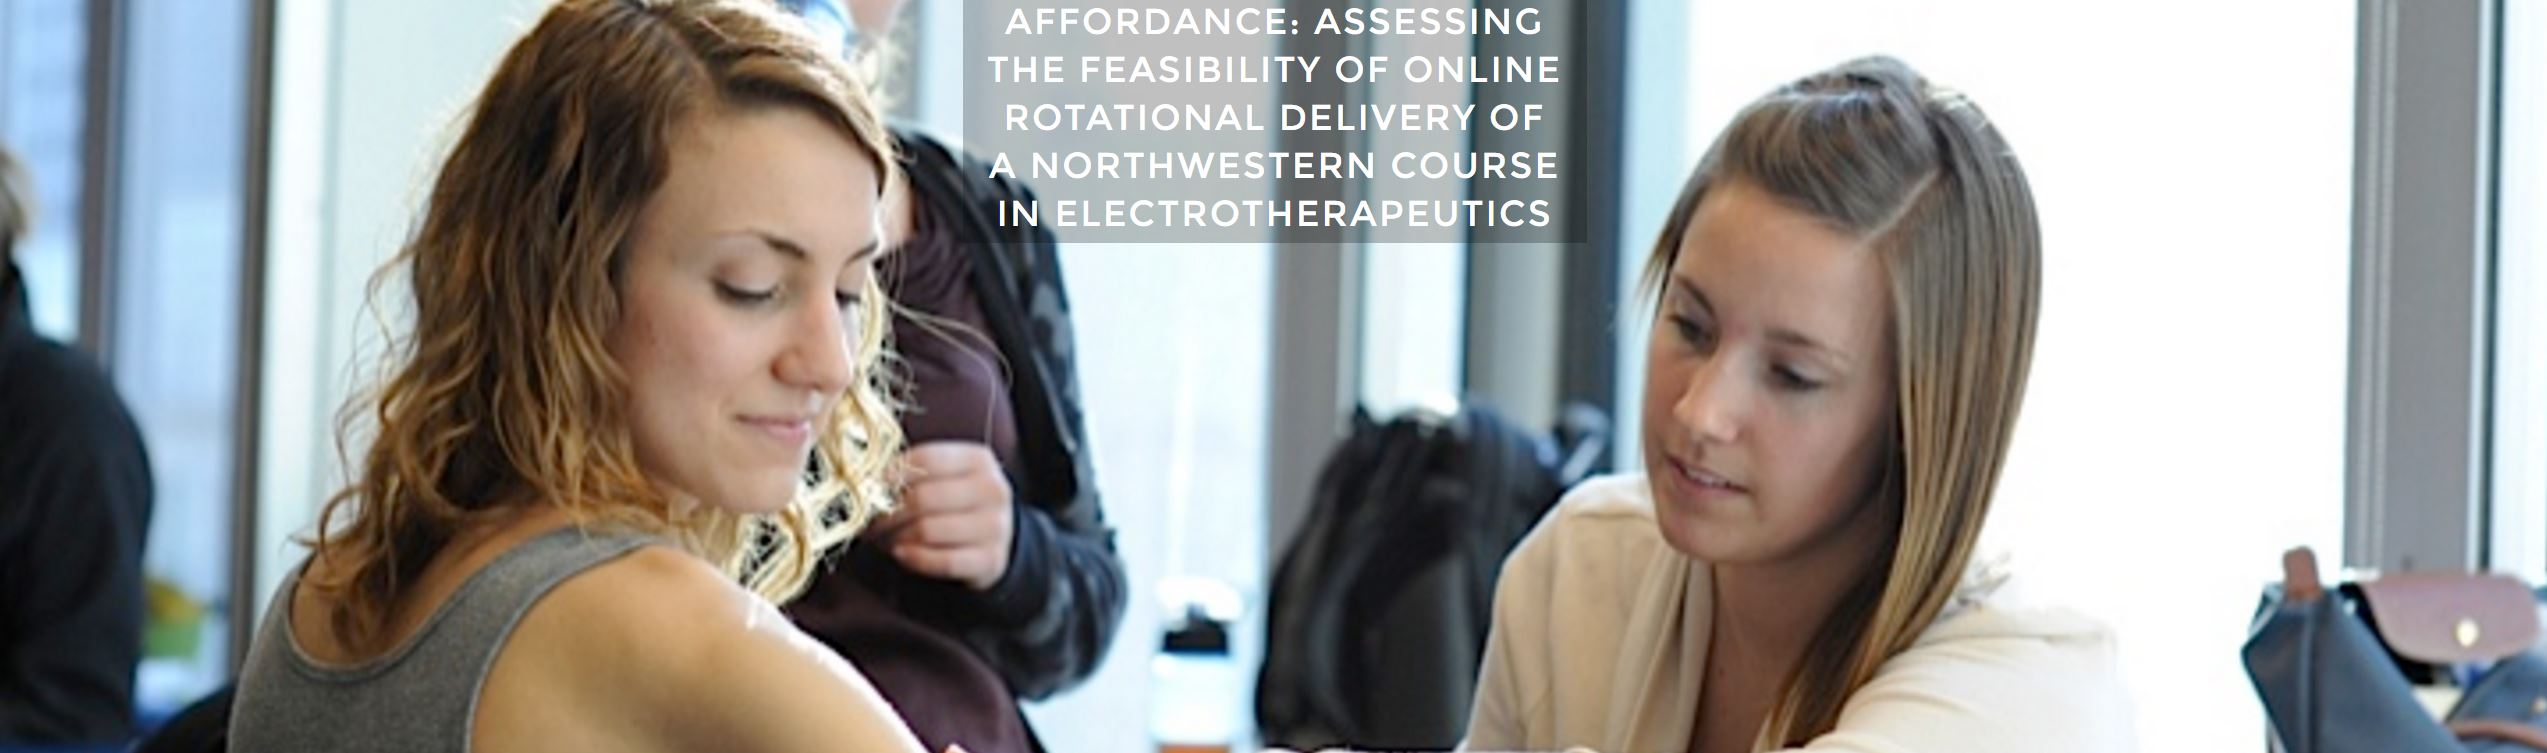 AFFORDANCE: Assessing the Feasibility of Online Rotational Delivery of a Northwestern Course in Electrotherapeutics